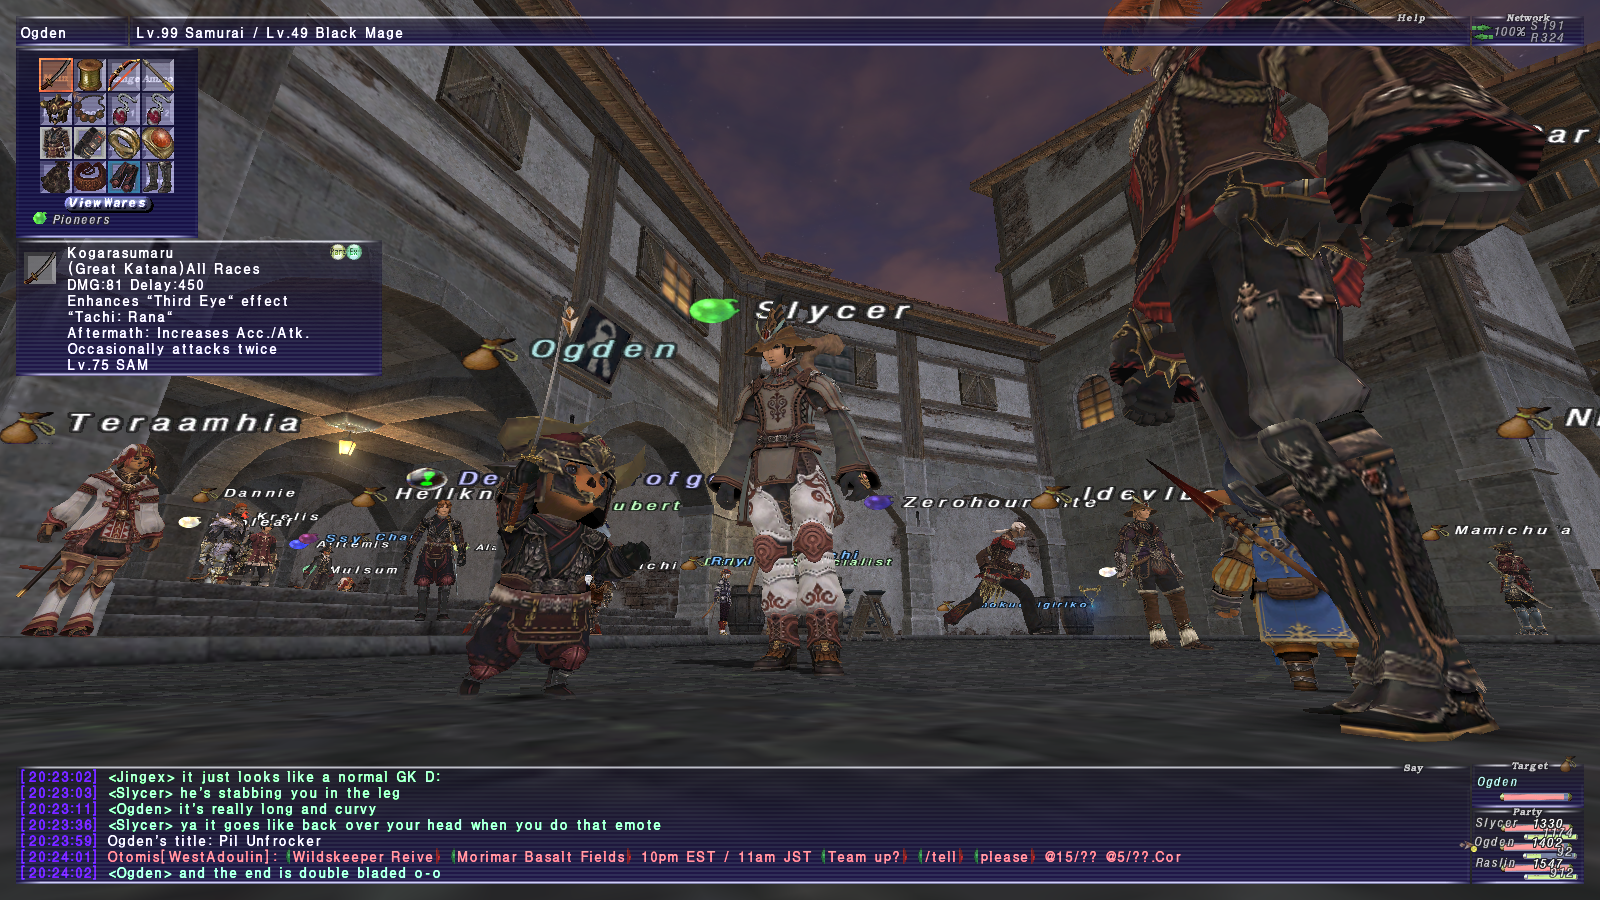 slycer ffxi doing this that comes love down proph also caliburn grats tool shame like prophett moirai leviathan list relicmythic weapons seems completed known time long forever